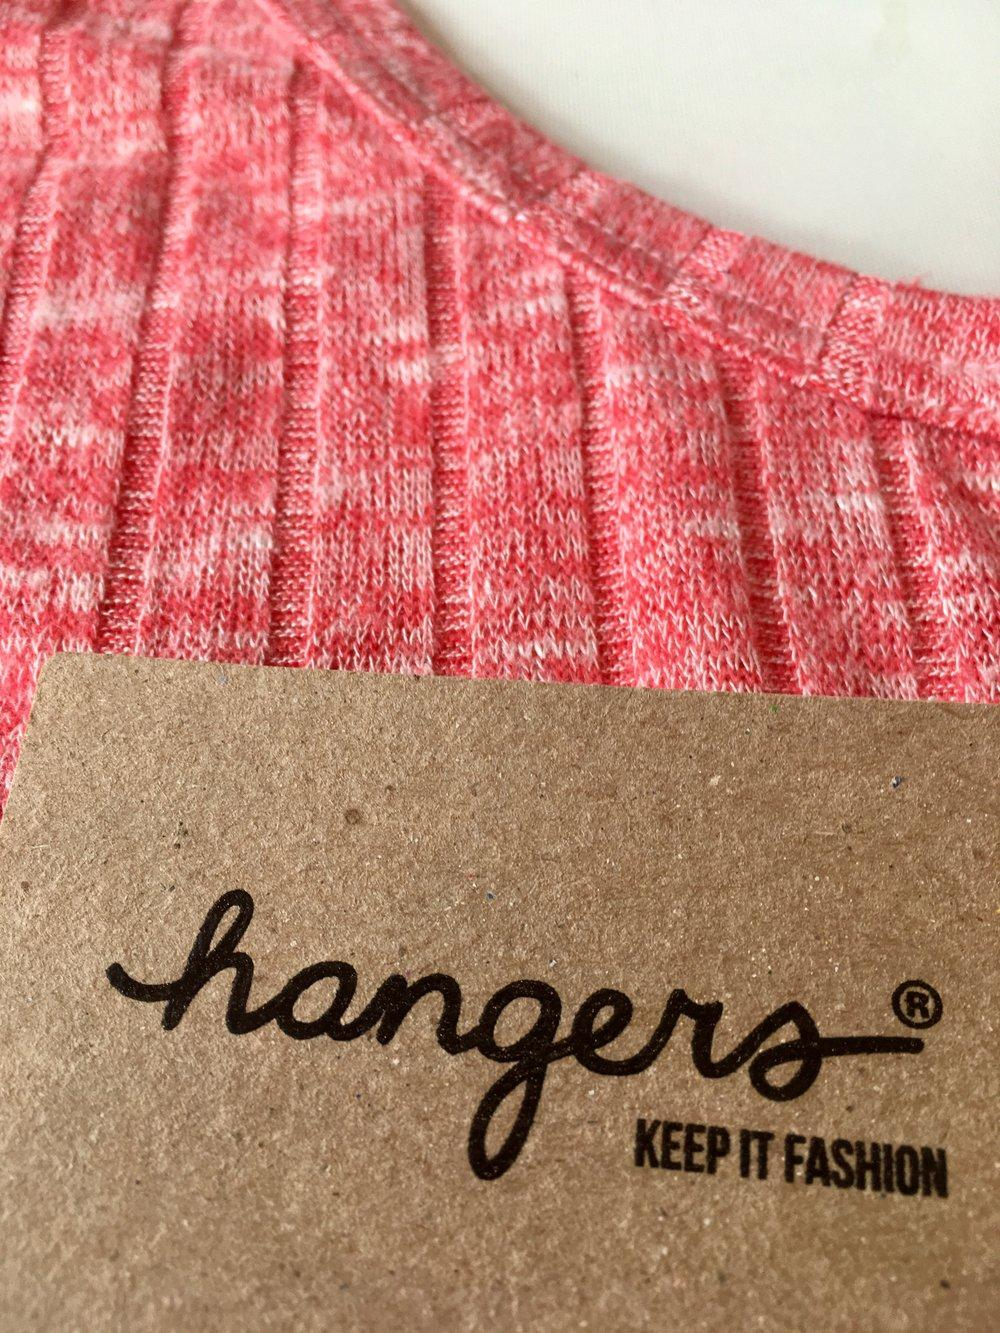 closeup of small crop top and label